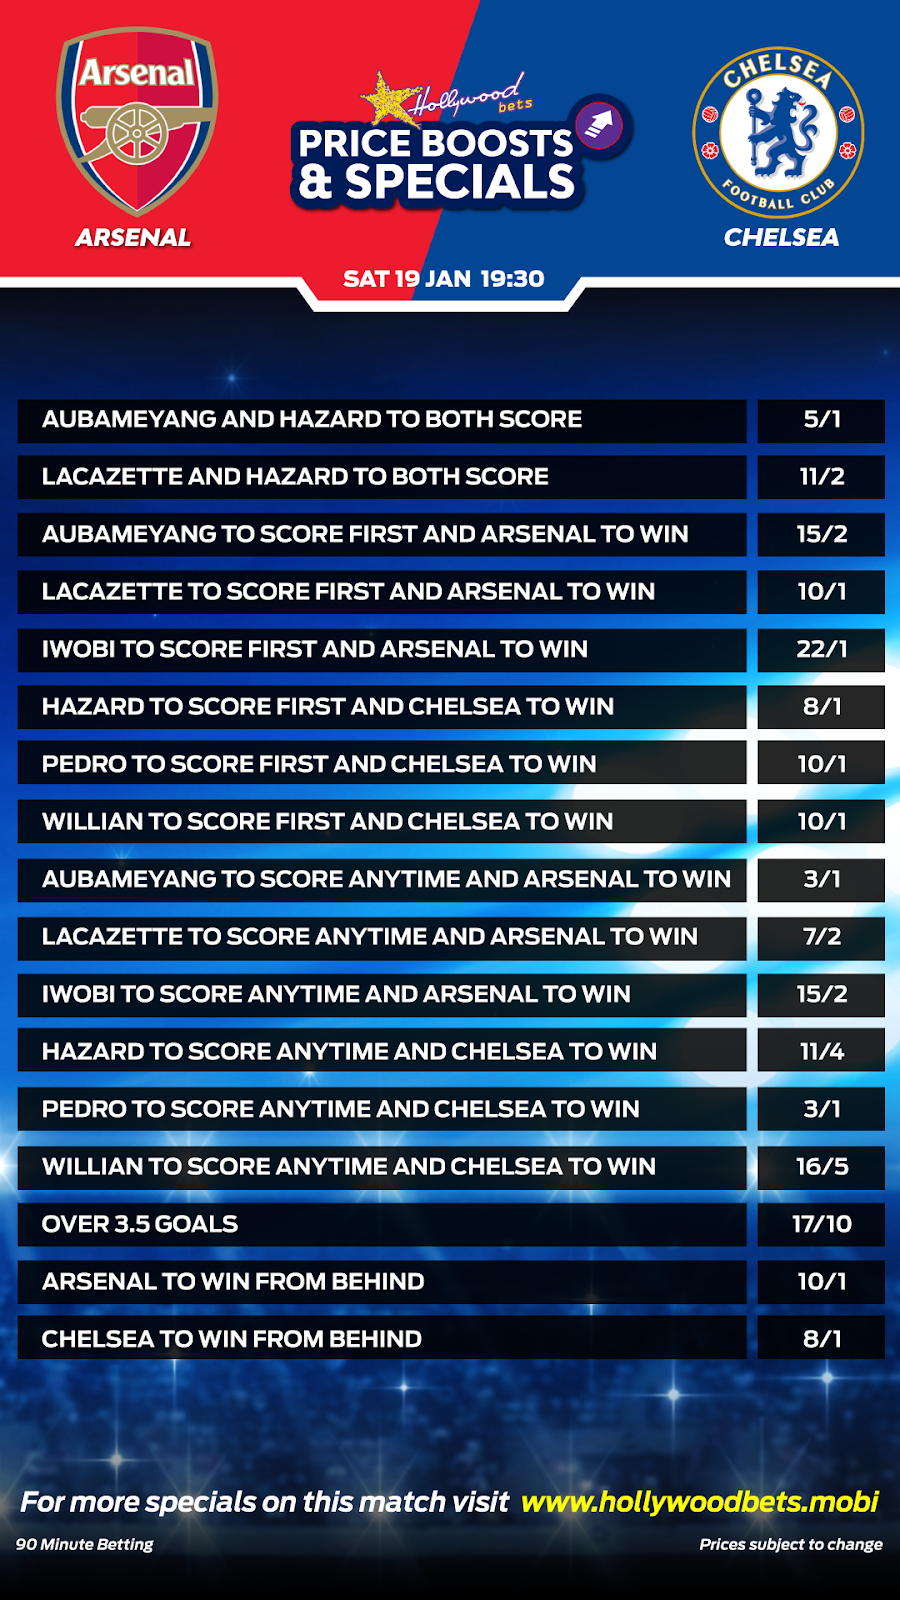 Arsenal vs Chelsea - Price Boosts and Specials - Hollywoodbets